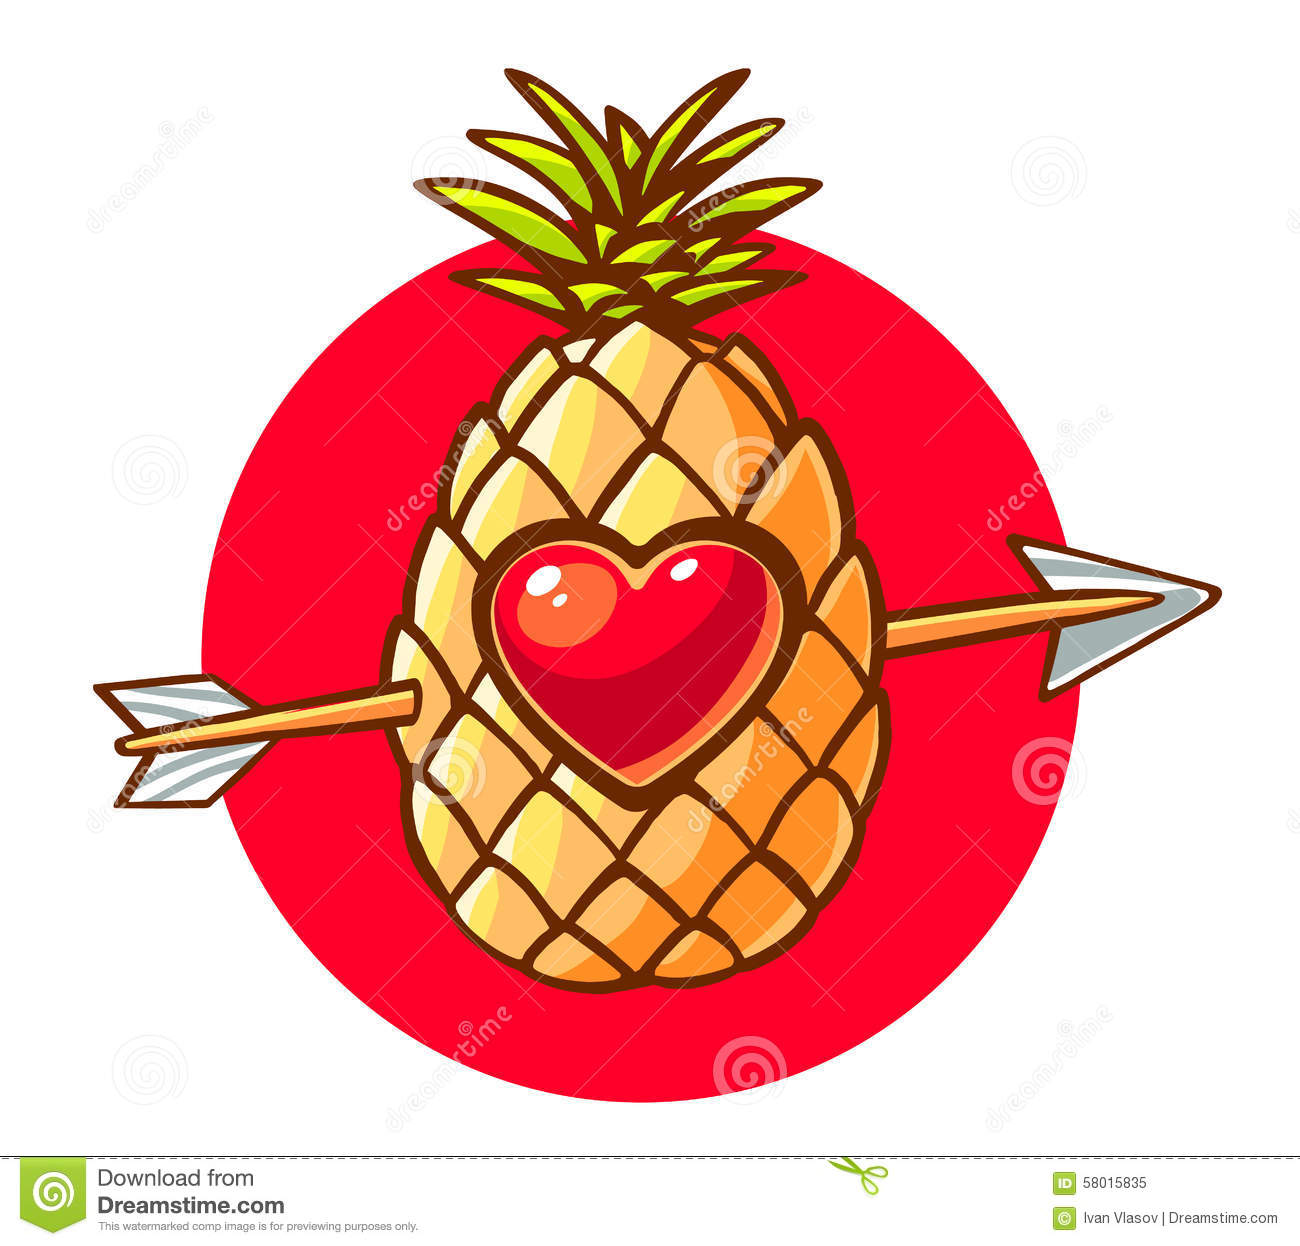 Vector Illustration Of Colorful Pineapple With Heart And